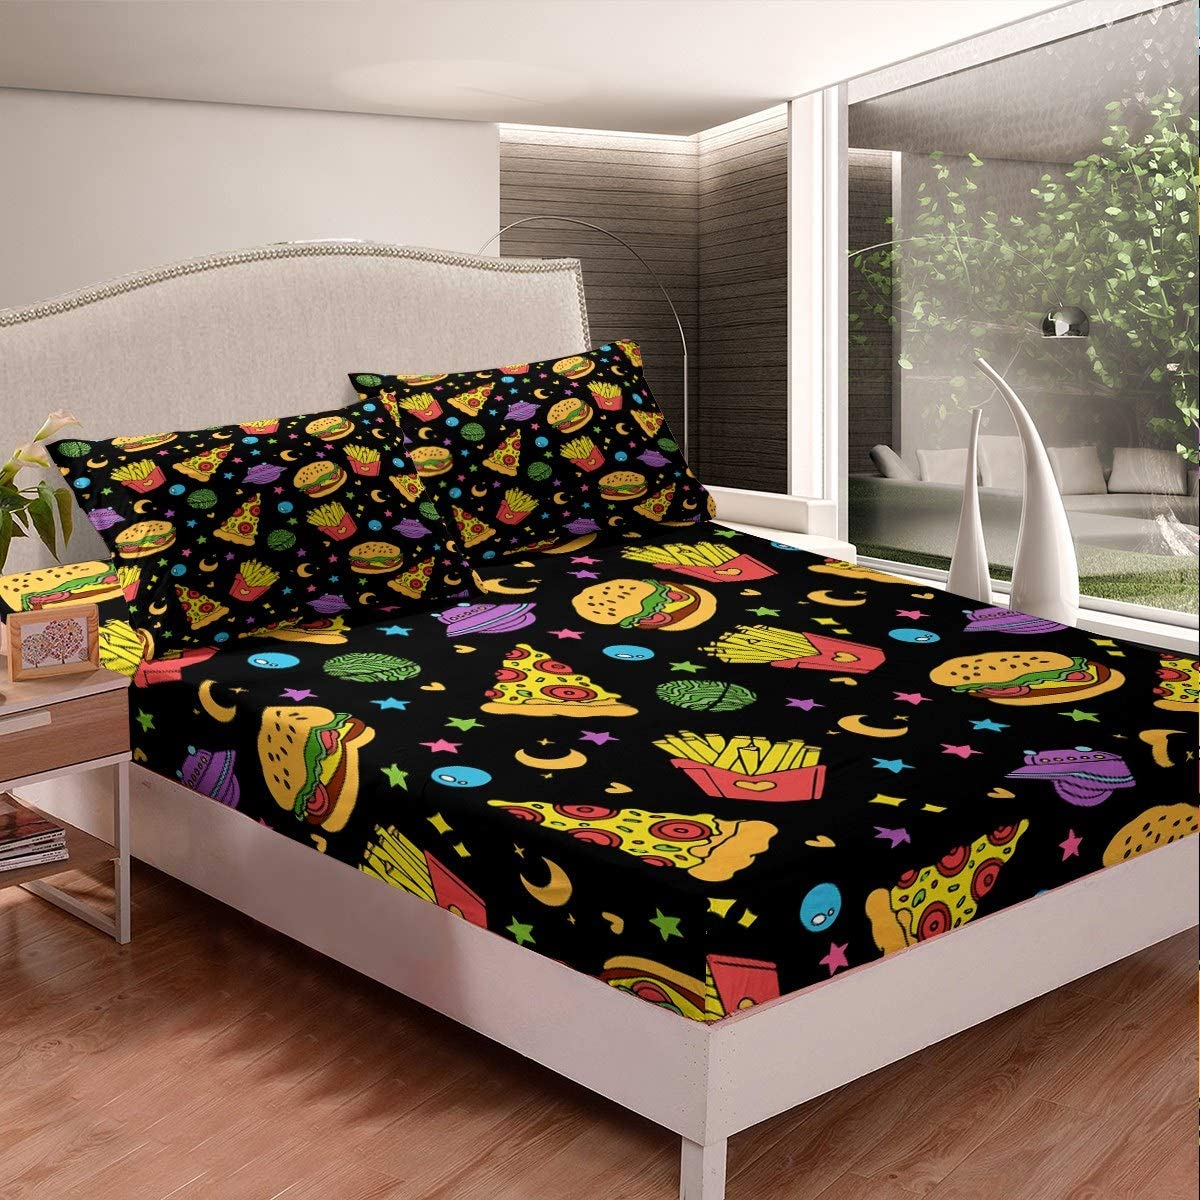 Fast Food Bedding Set for Kids Boys Girls Hamburg Pizza French Fries Bed Sheet Set Colorful Stars Fitted Sheet Delicious Food Bed Cover,Room Decor 3Pcs Sheets Full Size